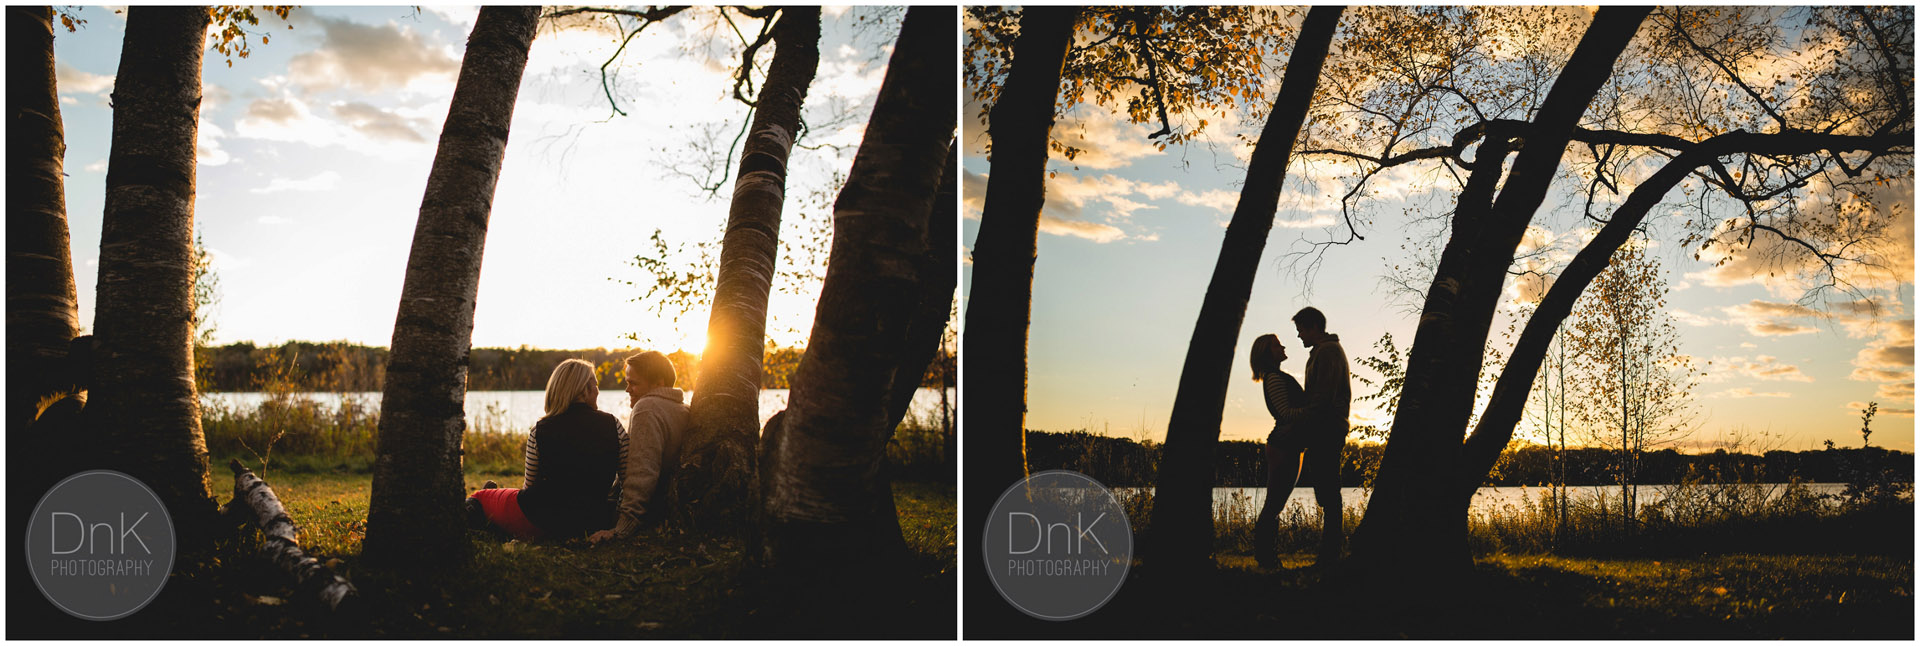 09-Fall-Engagement-Minnesota-DnK-Photography